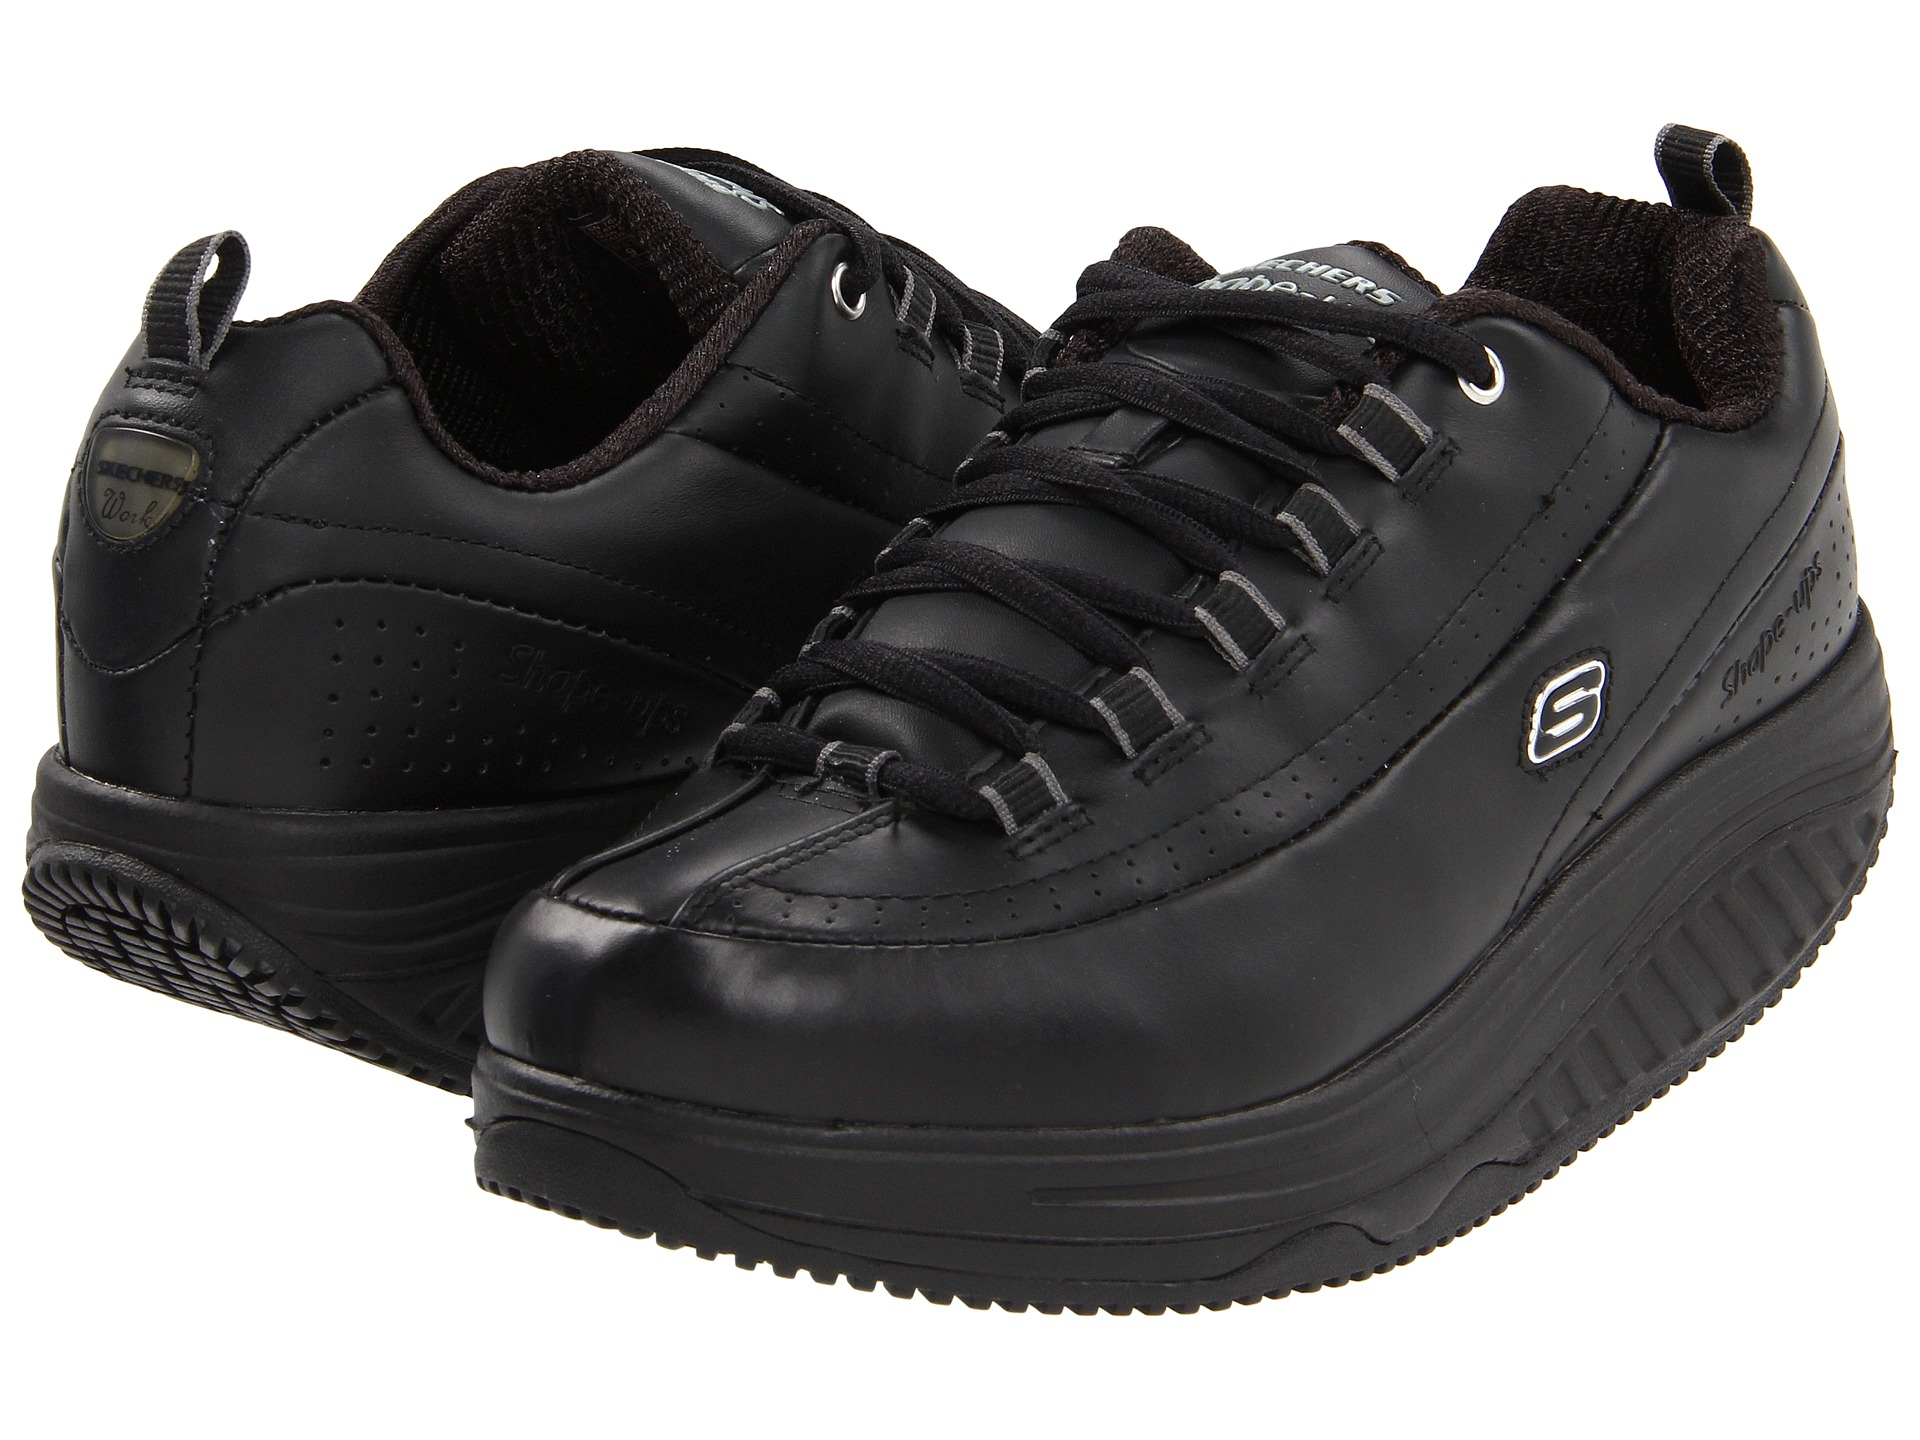 skechers work slip resistant shape ups black black. Black Bedroom Furniture Sets. Home Design Ideas